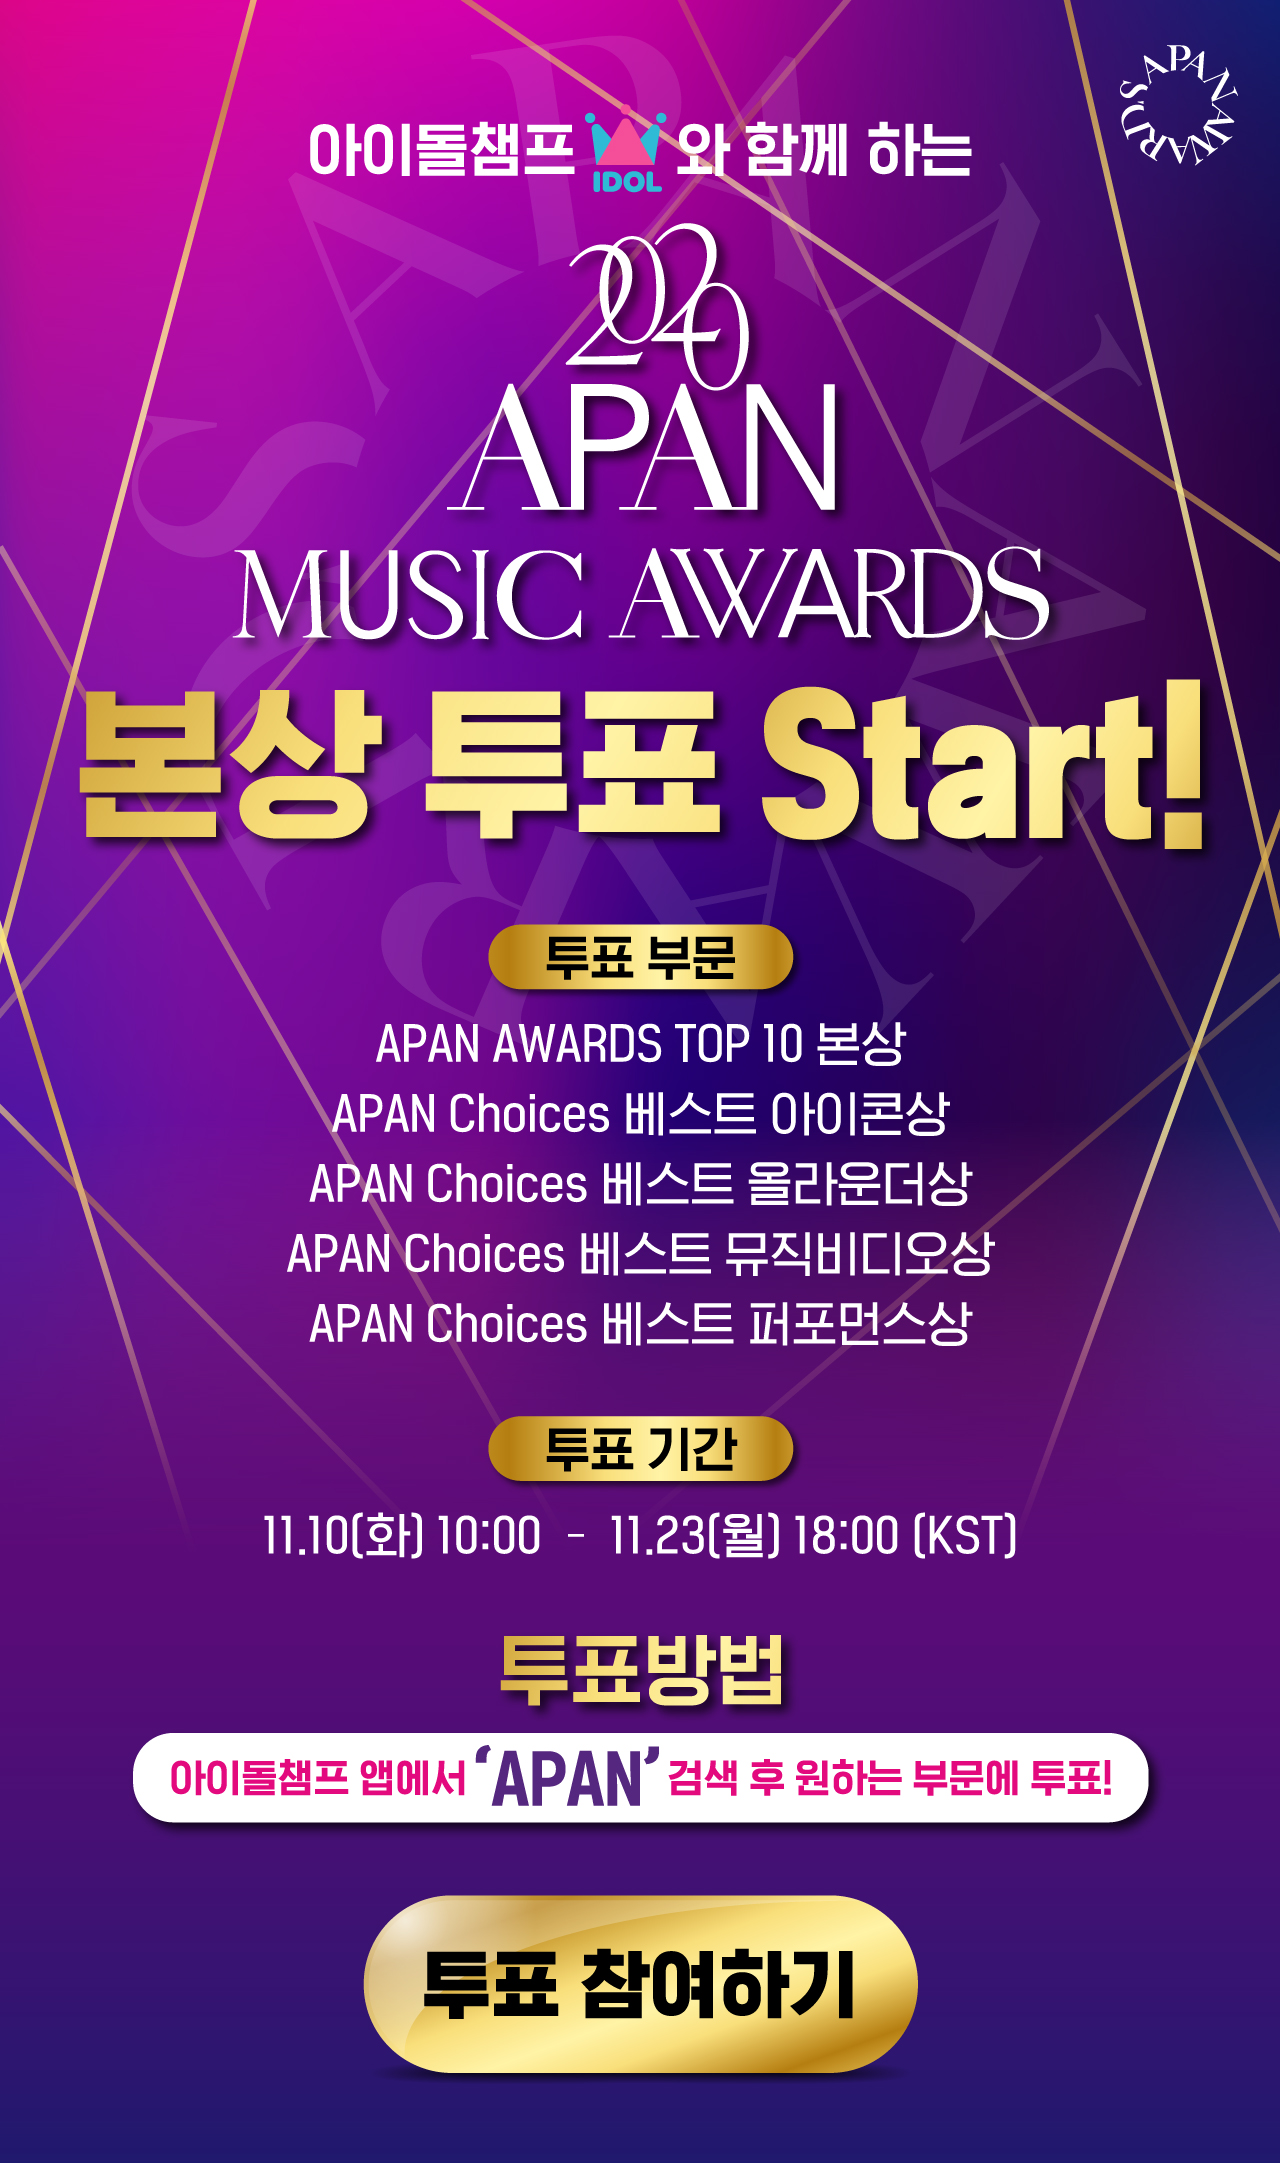 2020 APAN MUSIC AWARDS 본상 투표